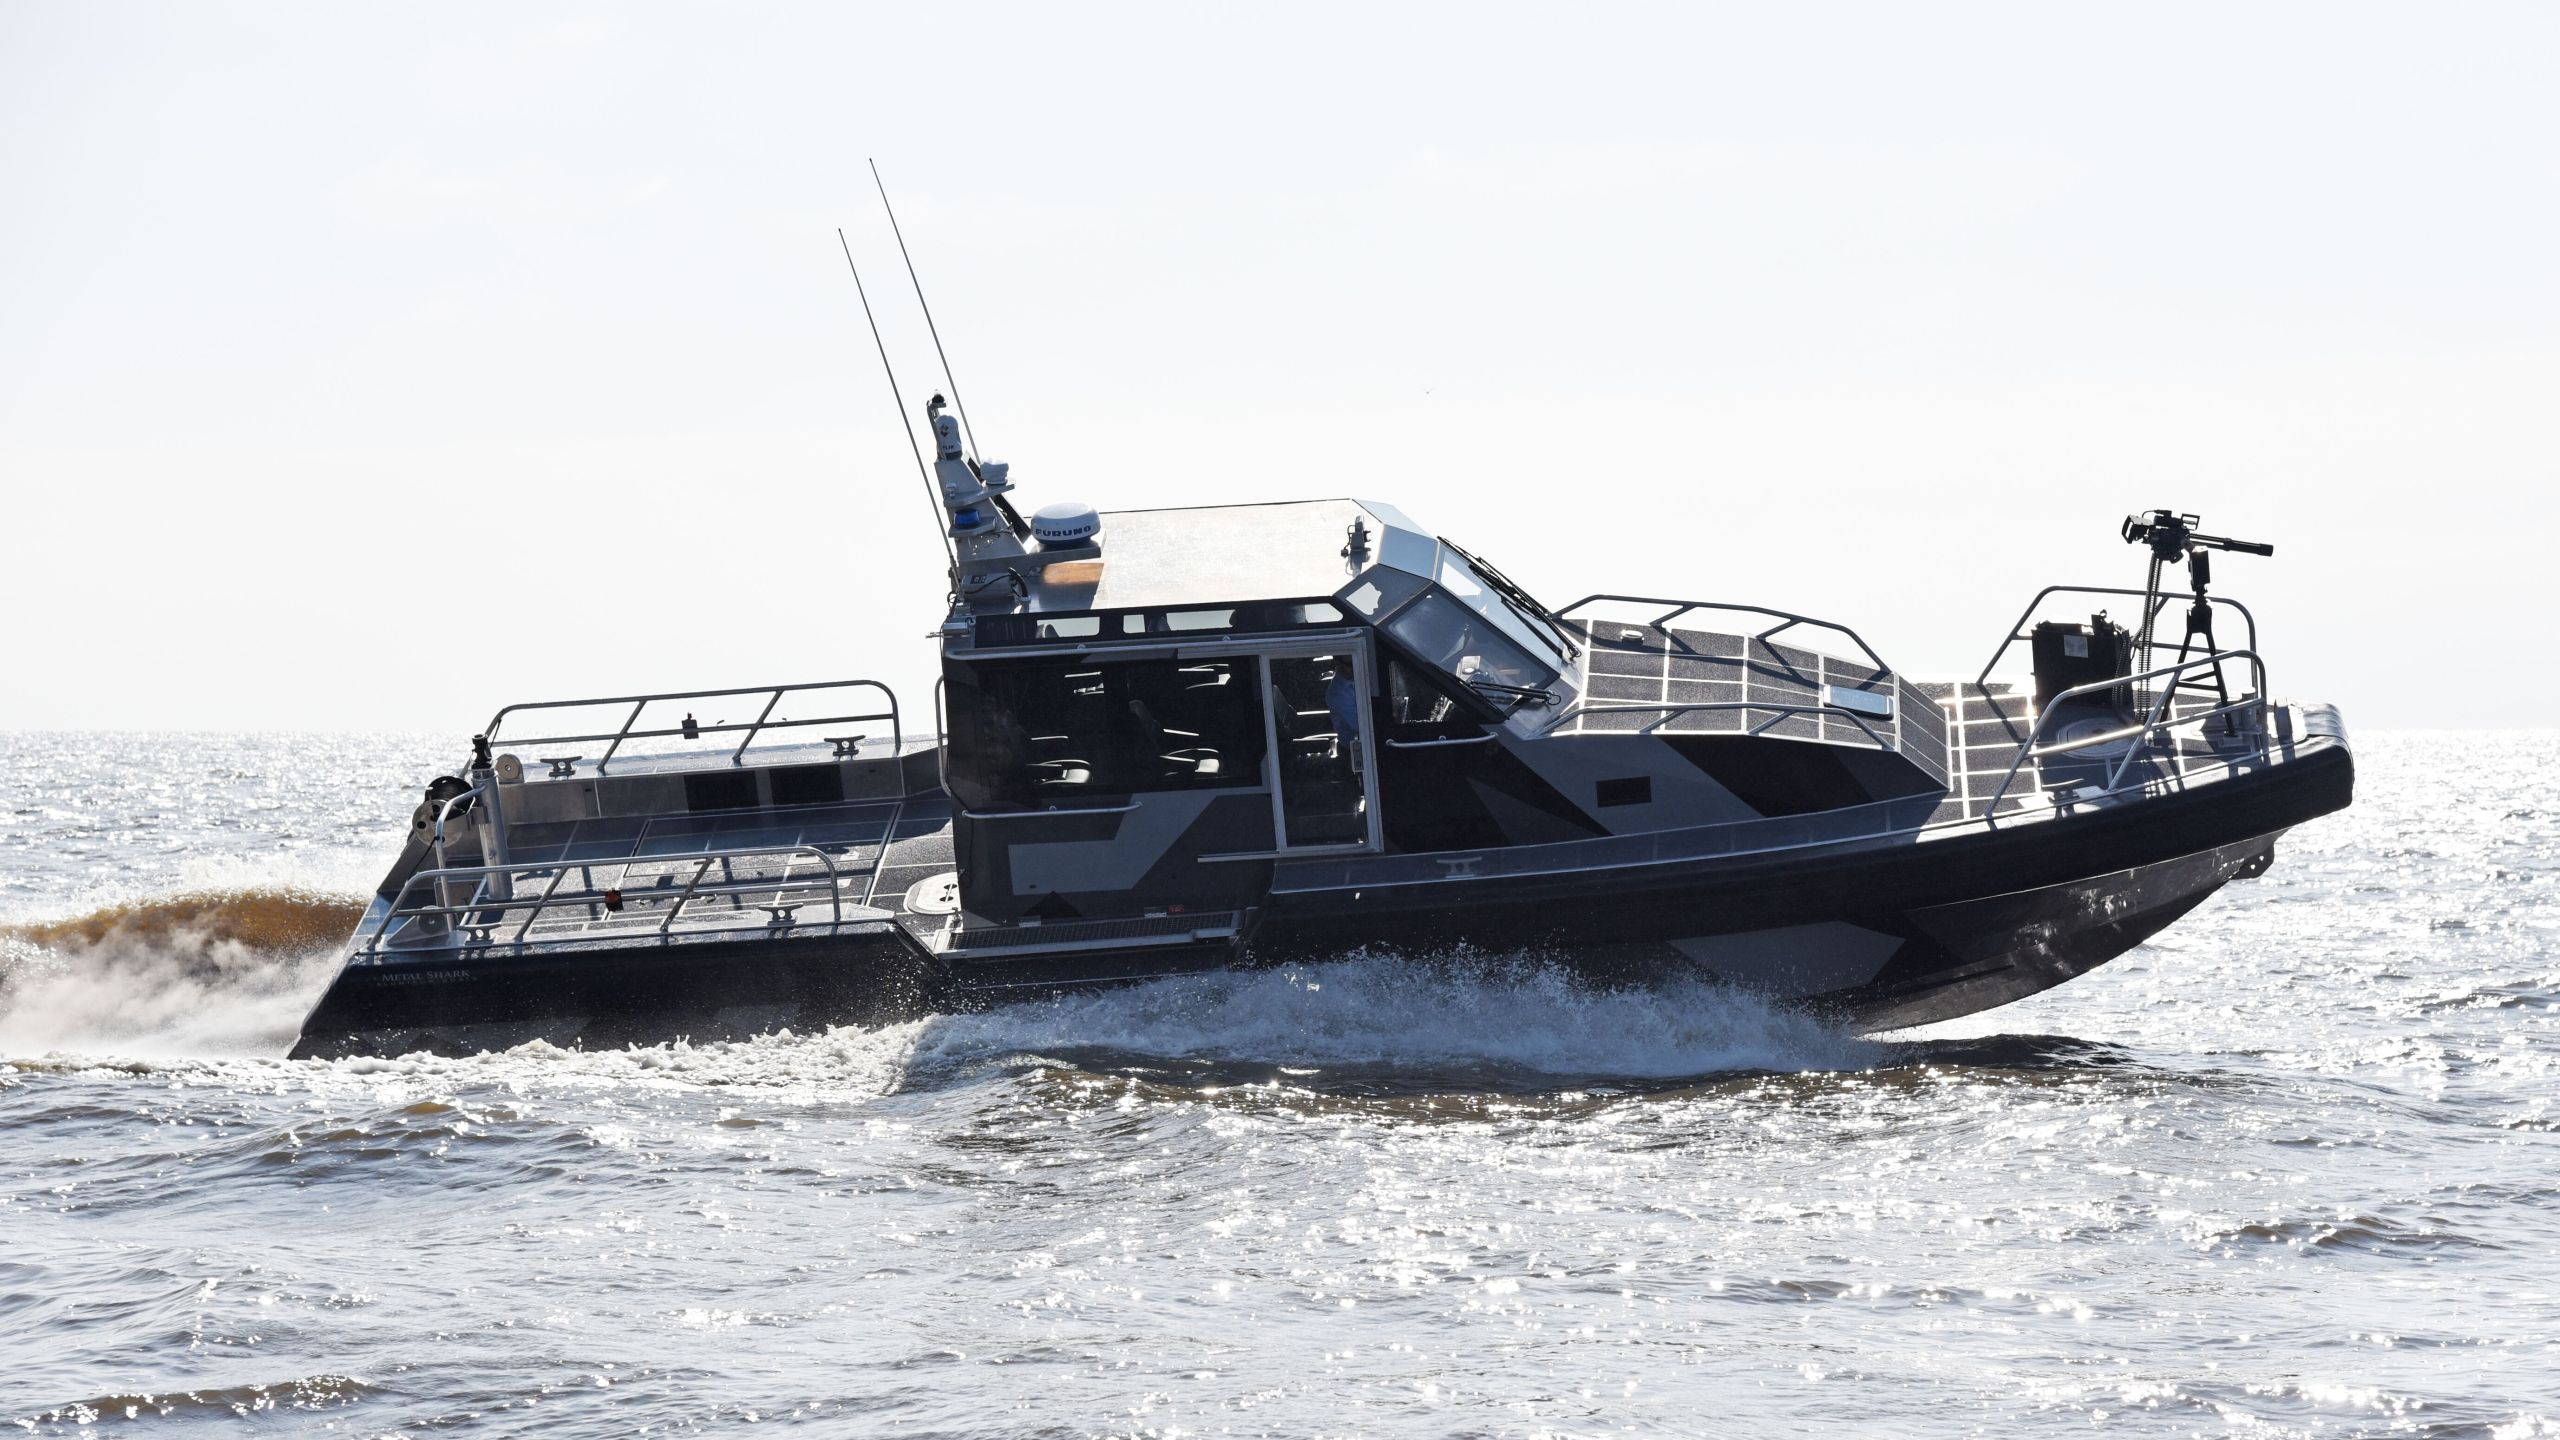 Metal Shark expands into Peru with multi-vessel patrol boat